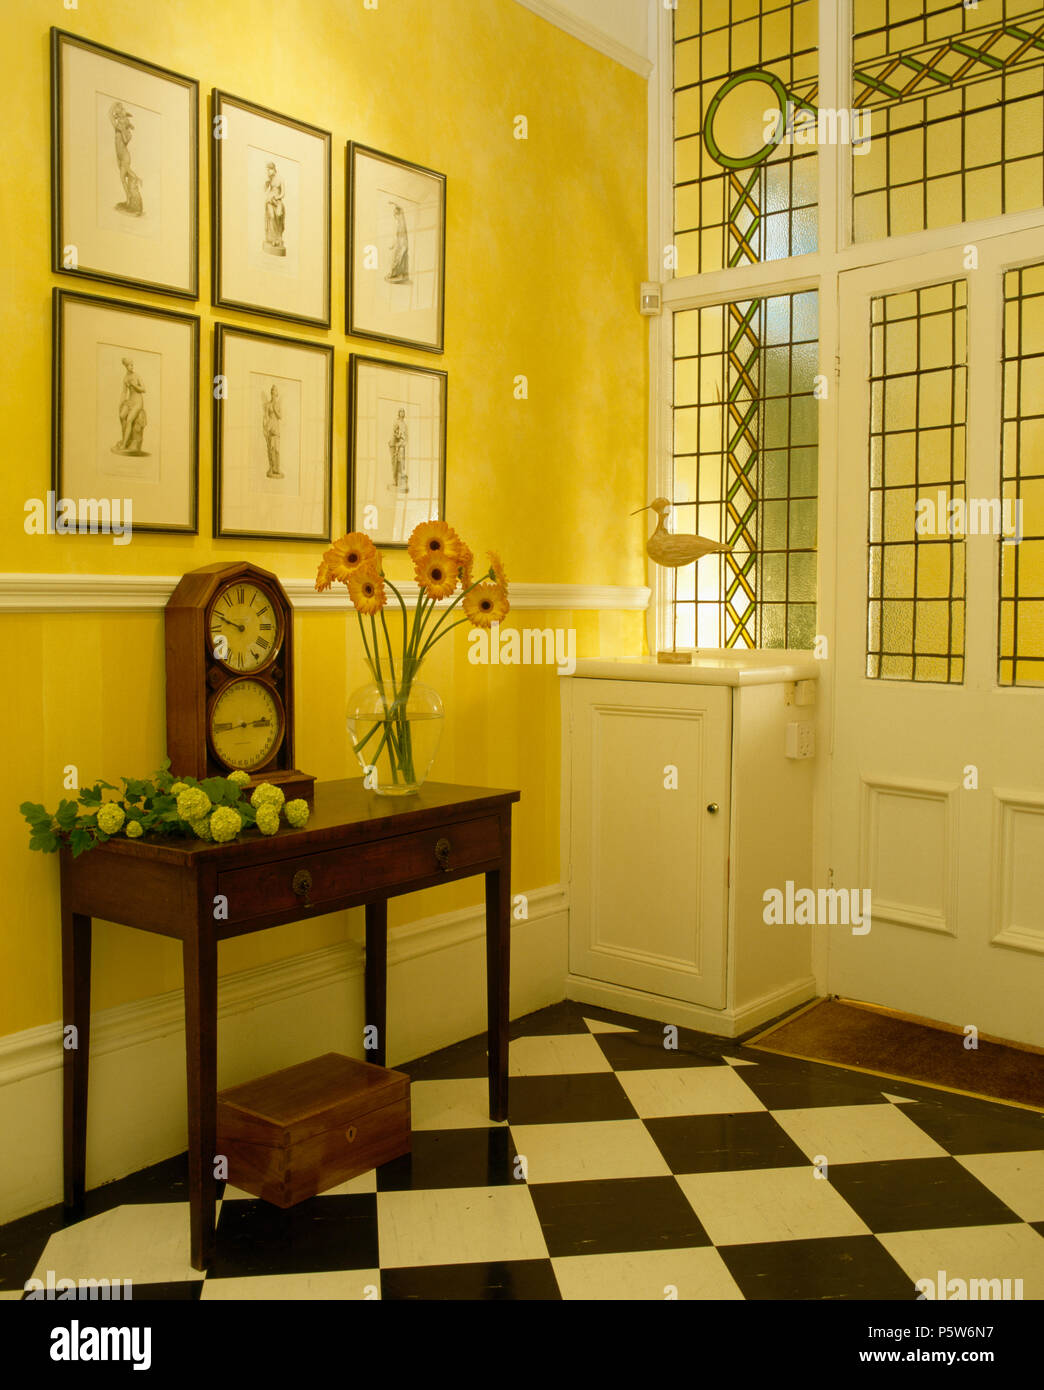 Black+hite cheque-board flooring and vintage console in yelllow hall with opaque glass panels in front door - Stock Image